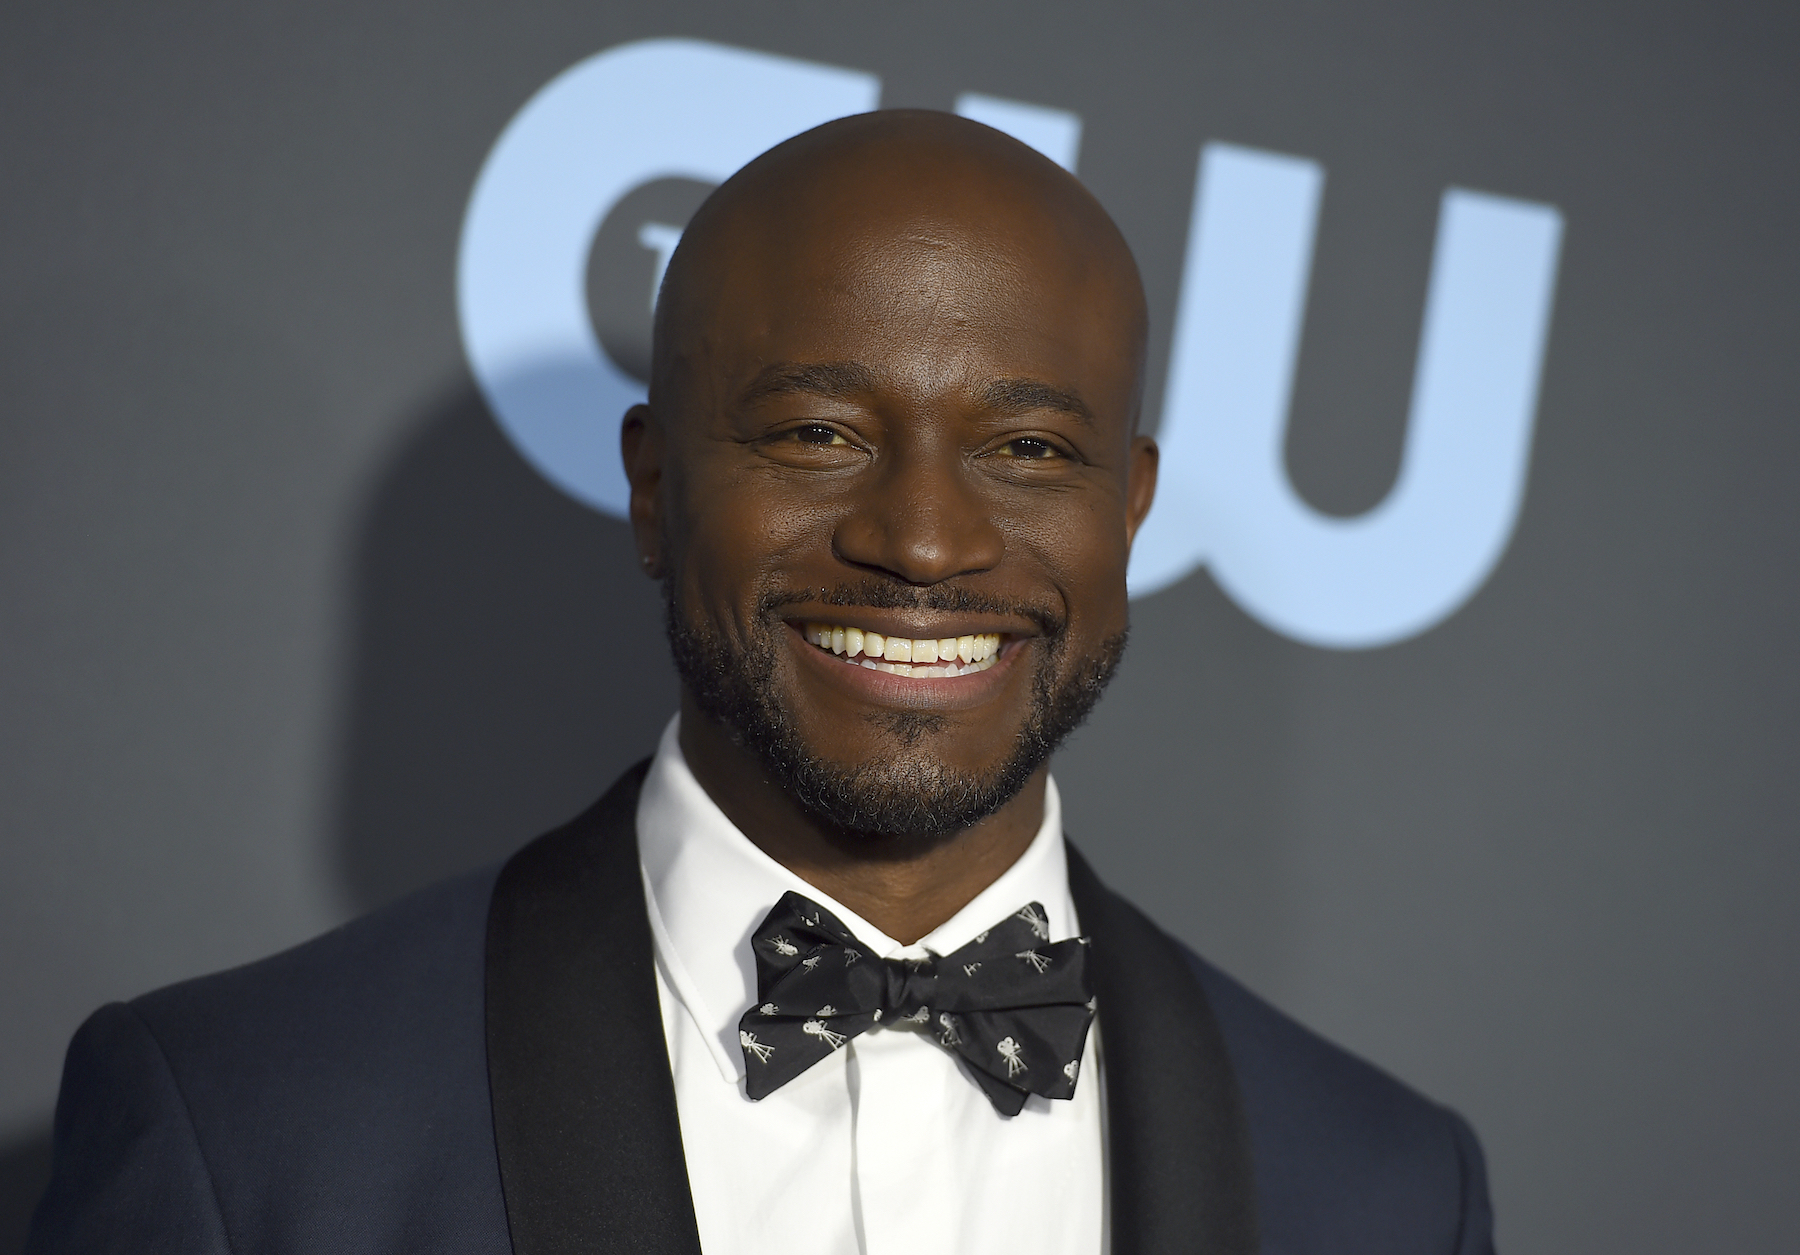 "<div class=""meta image-caption""><div class=""origin-logo origin-image ap""><span>AP</span></div><span class=""caption-text"">Taye Diggs arrives at the 24th annual Critics' Choice Awards on Sunday, Jan. 13, 2019, at the Barker Hangar in Santa Monica, Calif. (Jordan Strauss/Invision/AP)</span></div>"